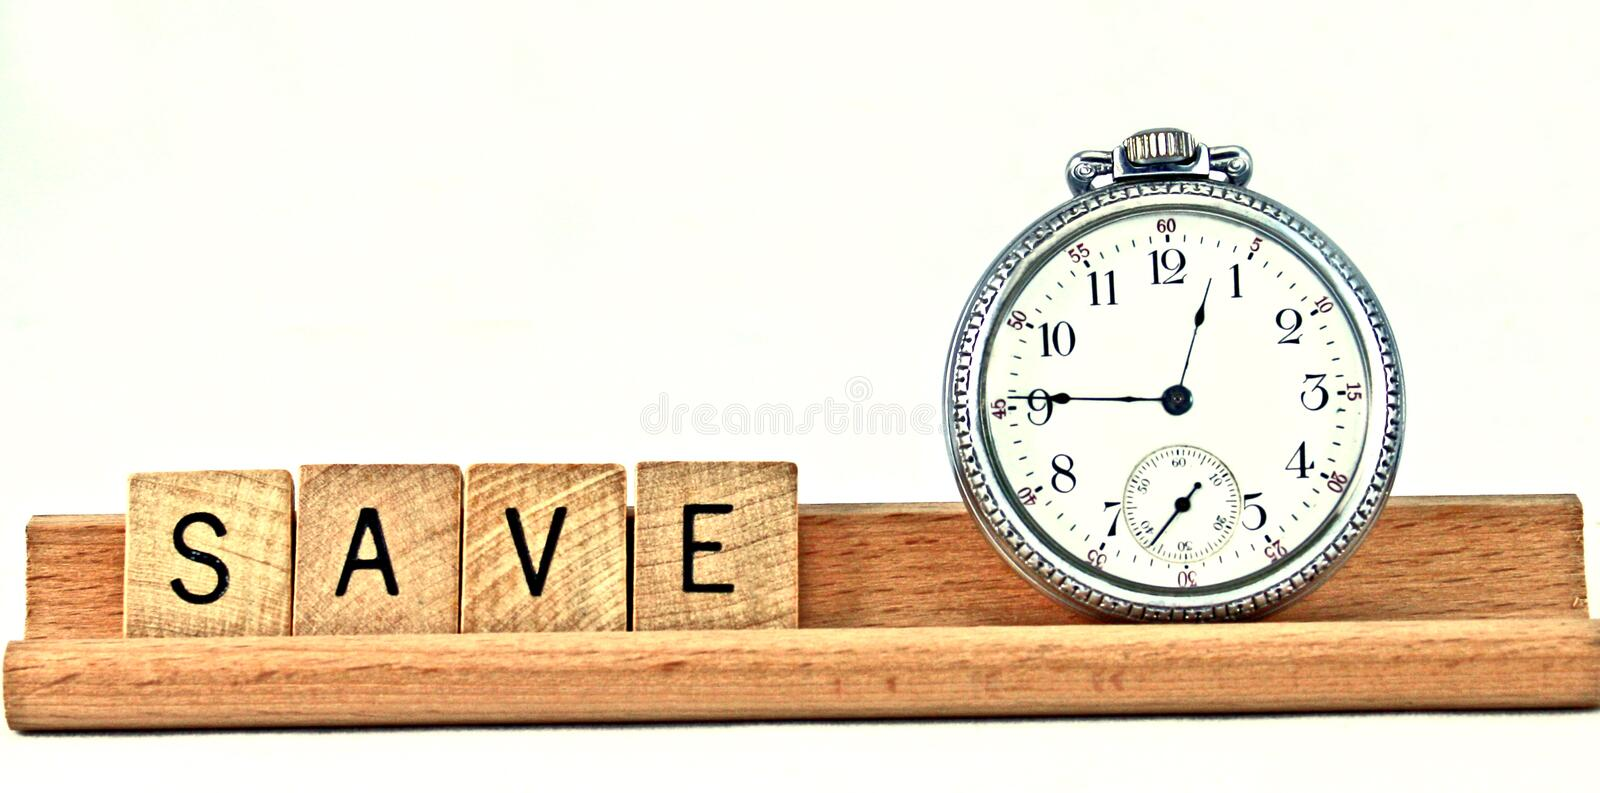 Save time stock images